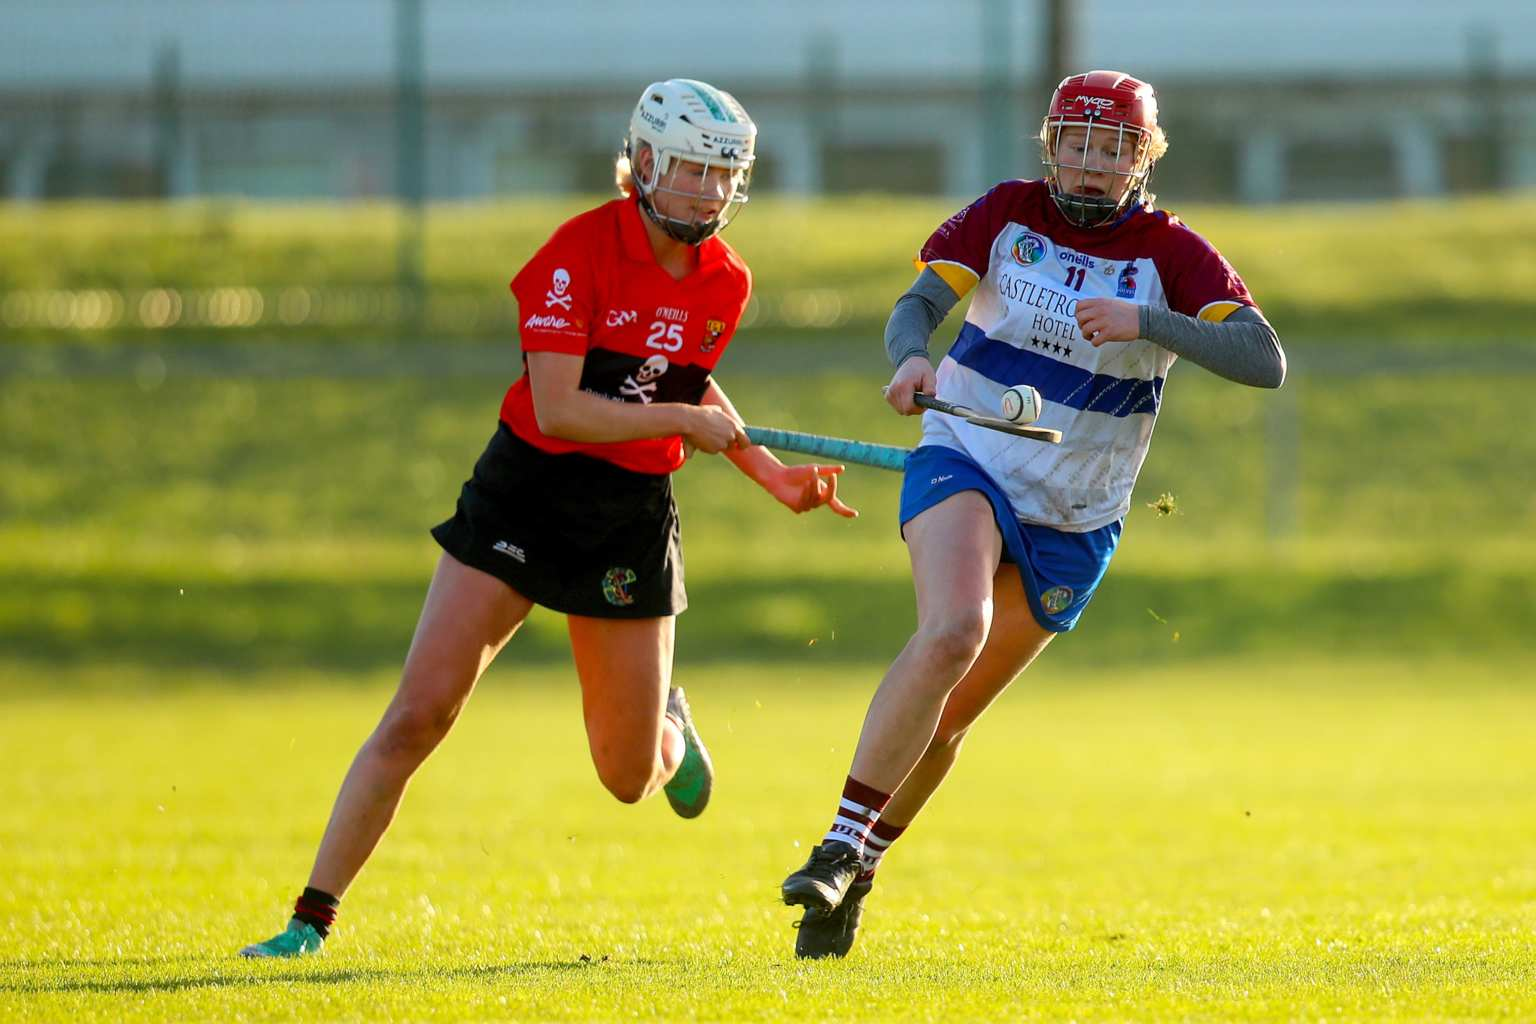 Two college Camogie players in action during the UPMC Ashbourne Cup weekend.